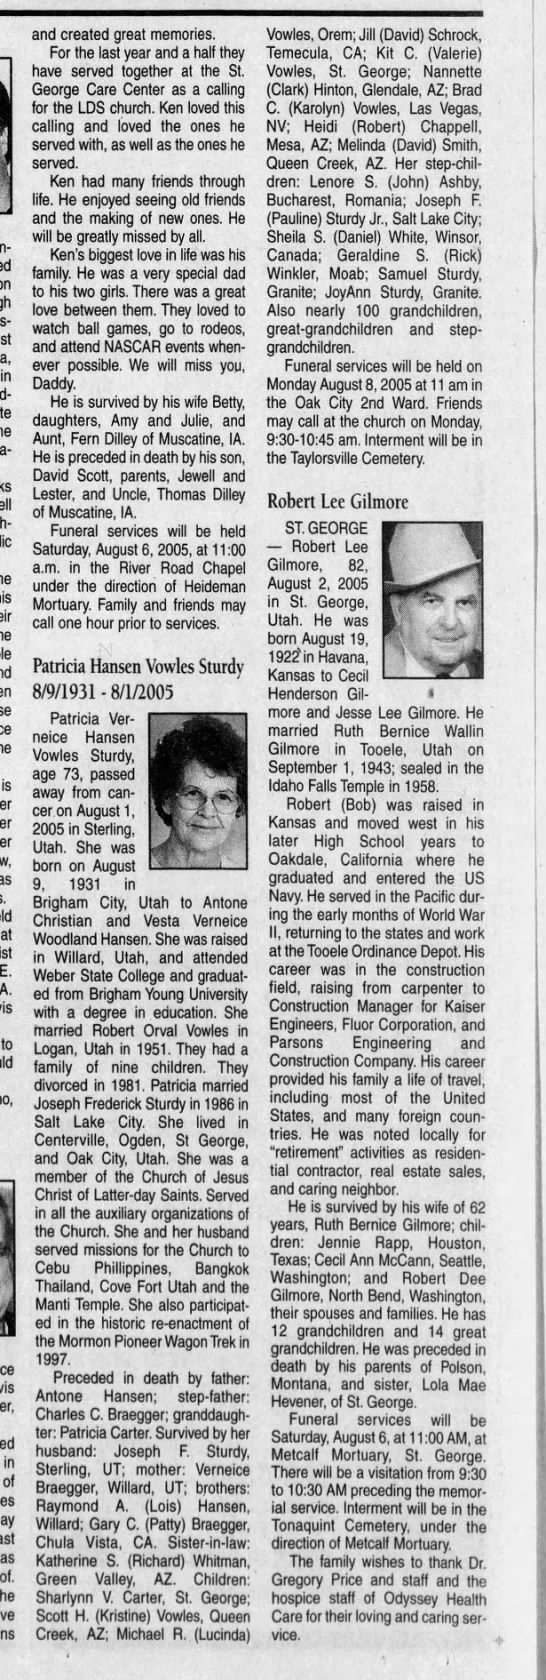 sturdy, patricia hansen - fun-loving, in he he is as at E. to in of of....